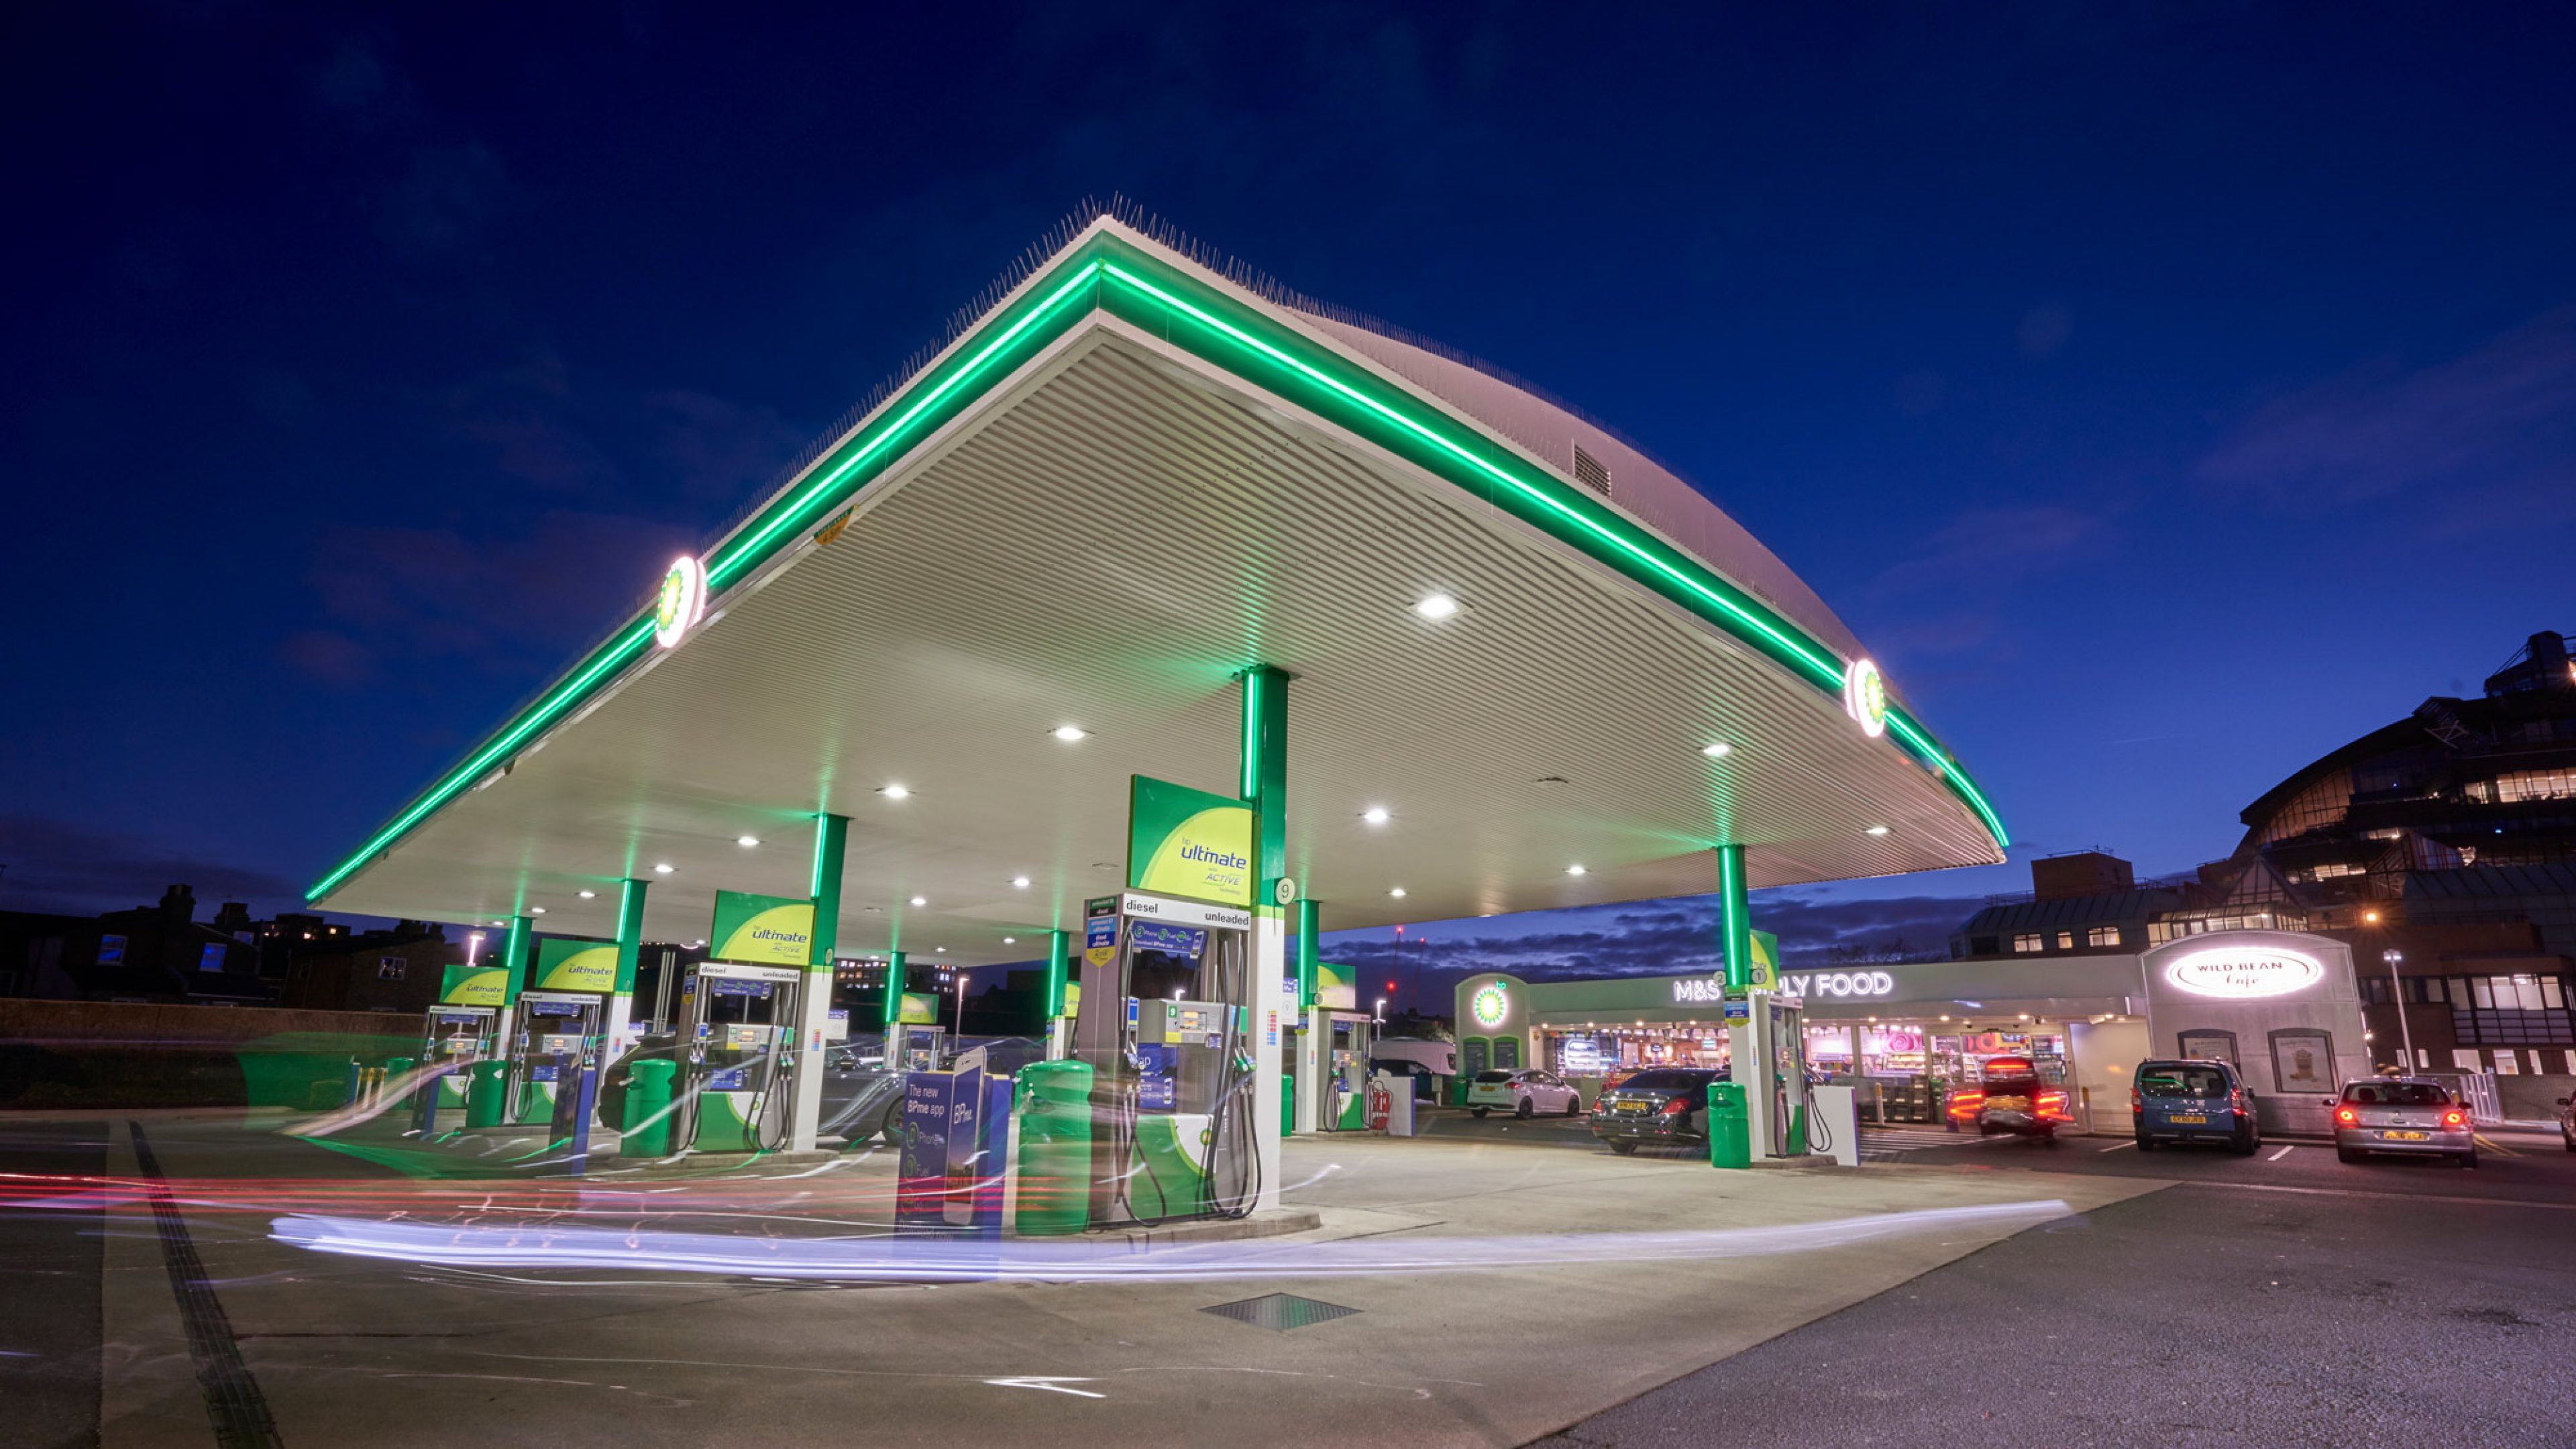 A BP service station in London, following its refresh